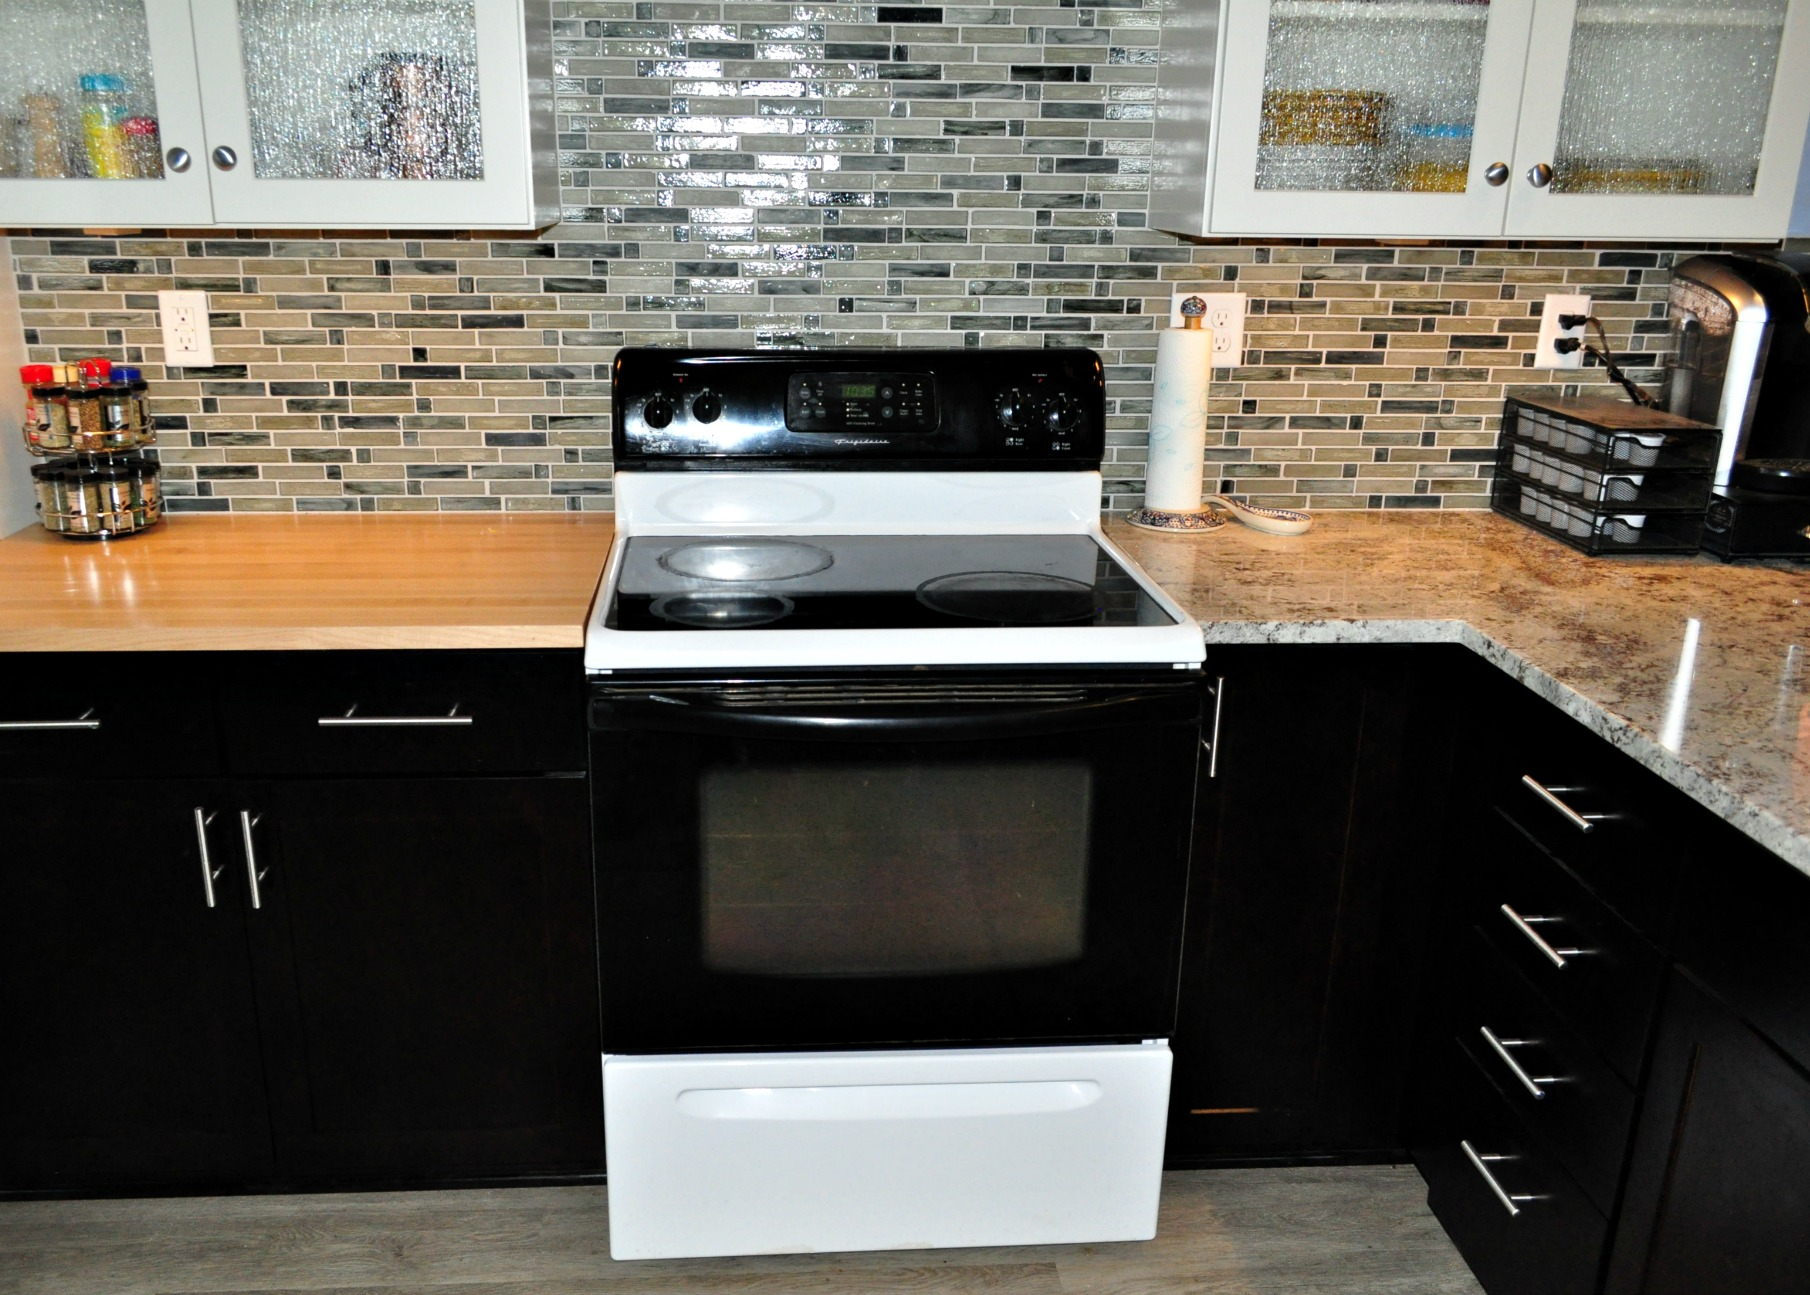 New Range from Remodeling Contractor